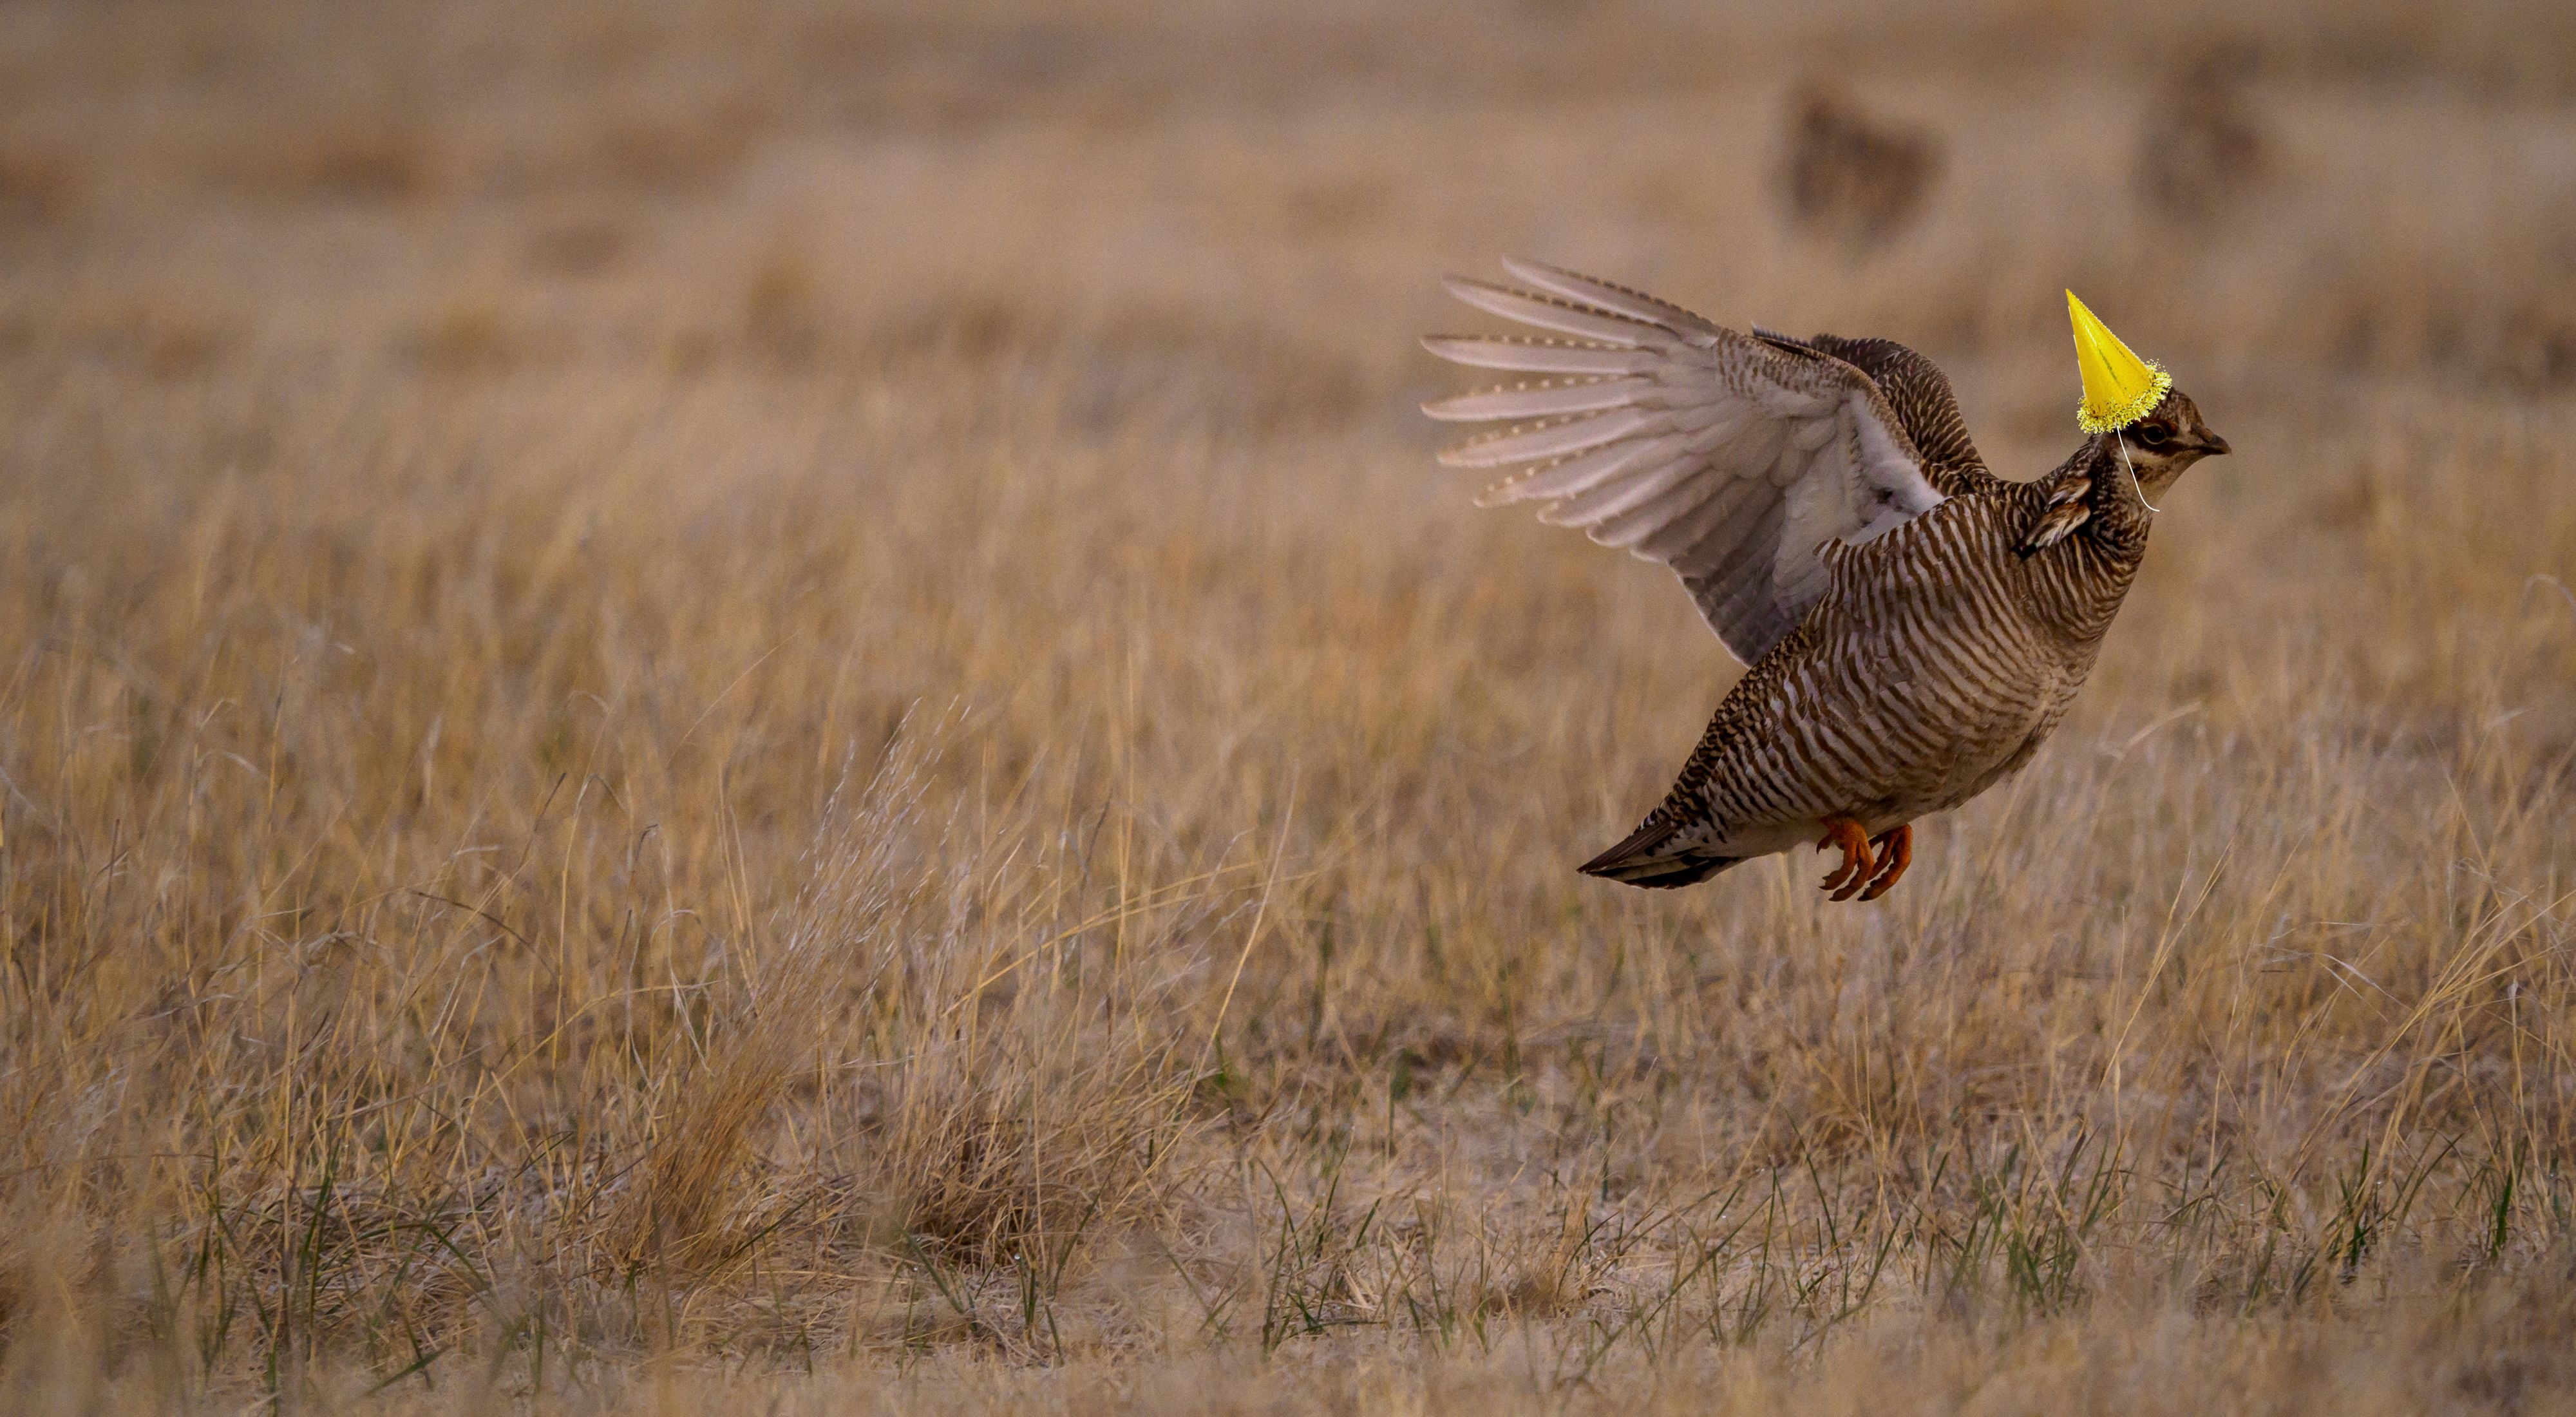 Lesser prairie-chicken in flight with a party hat drawn on its head.